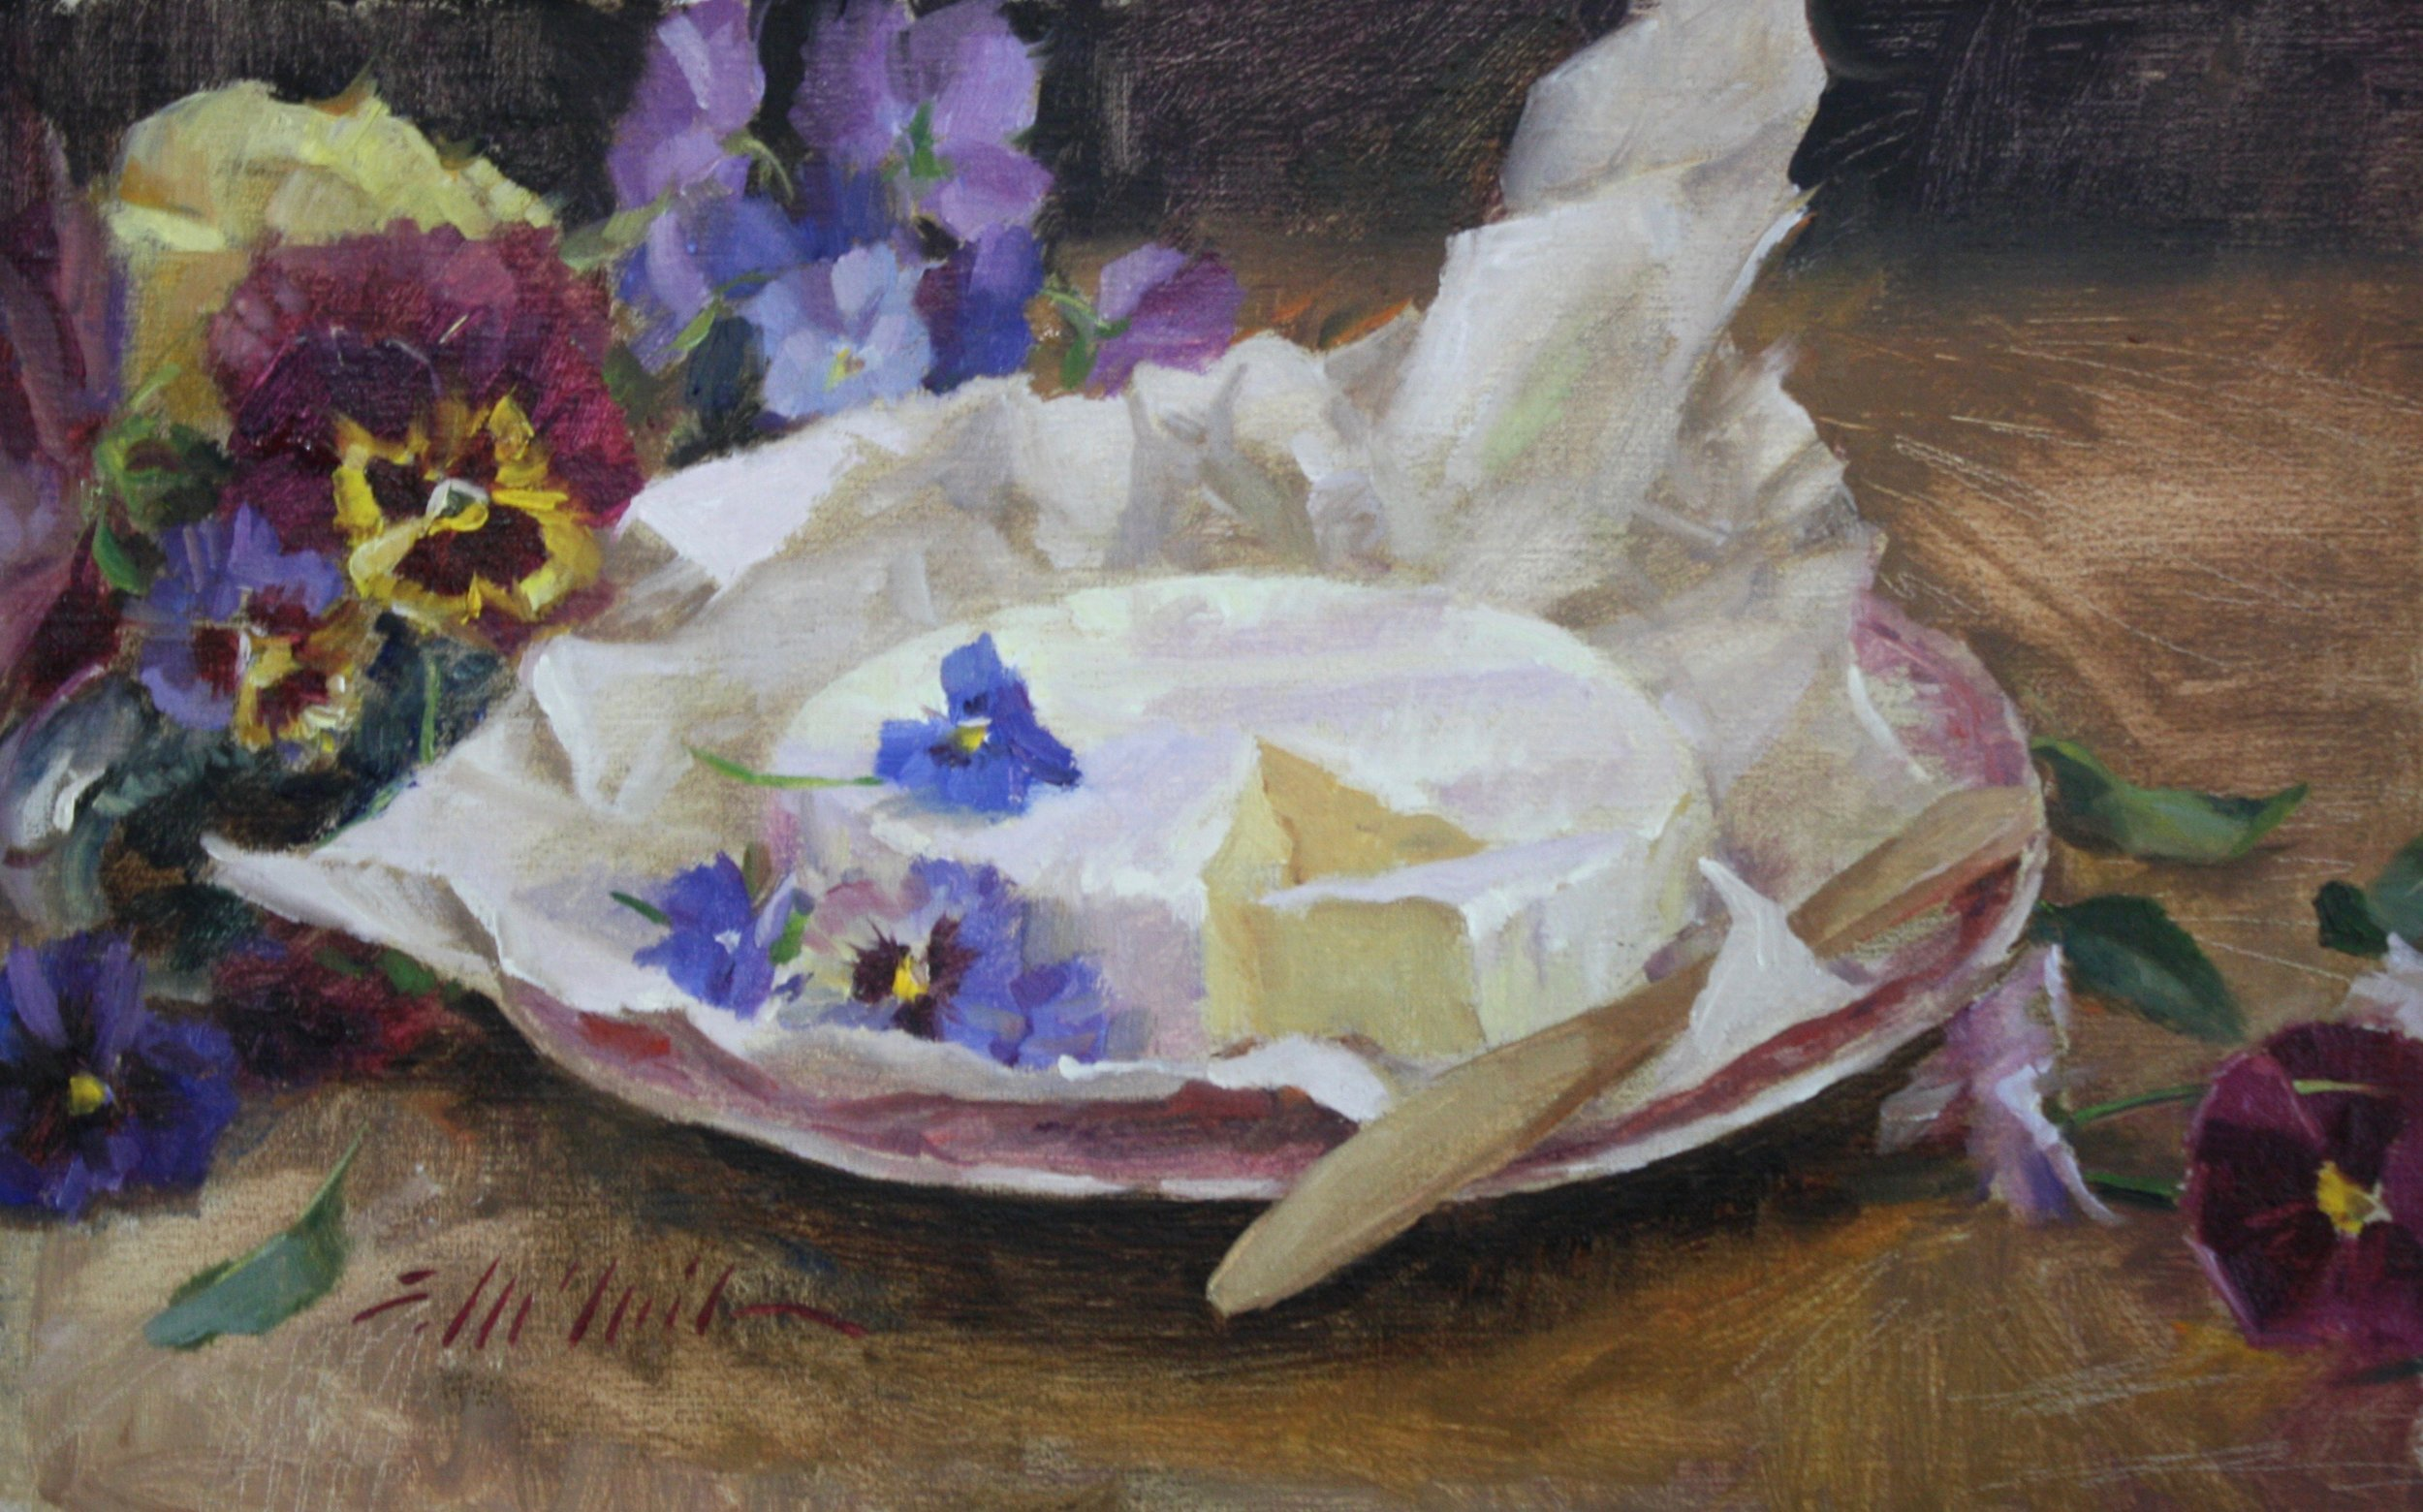 """Brie with Pansies"" 7.5x12 $350"